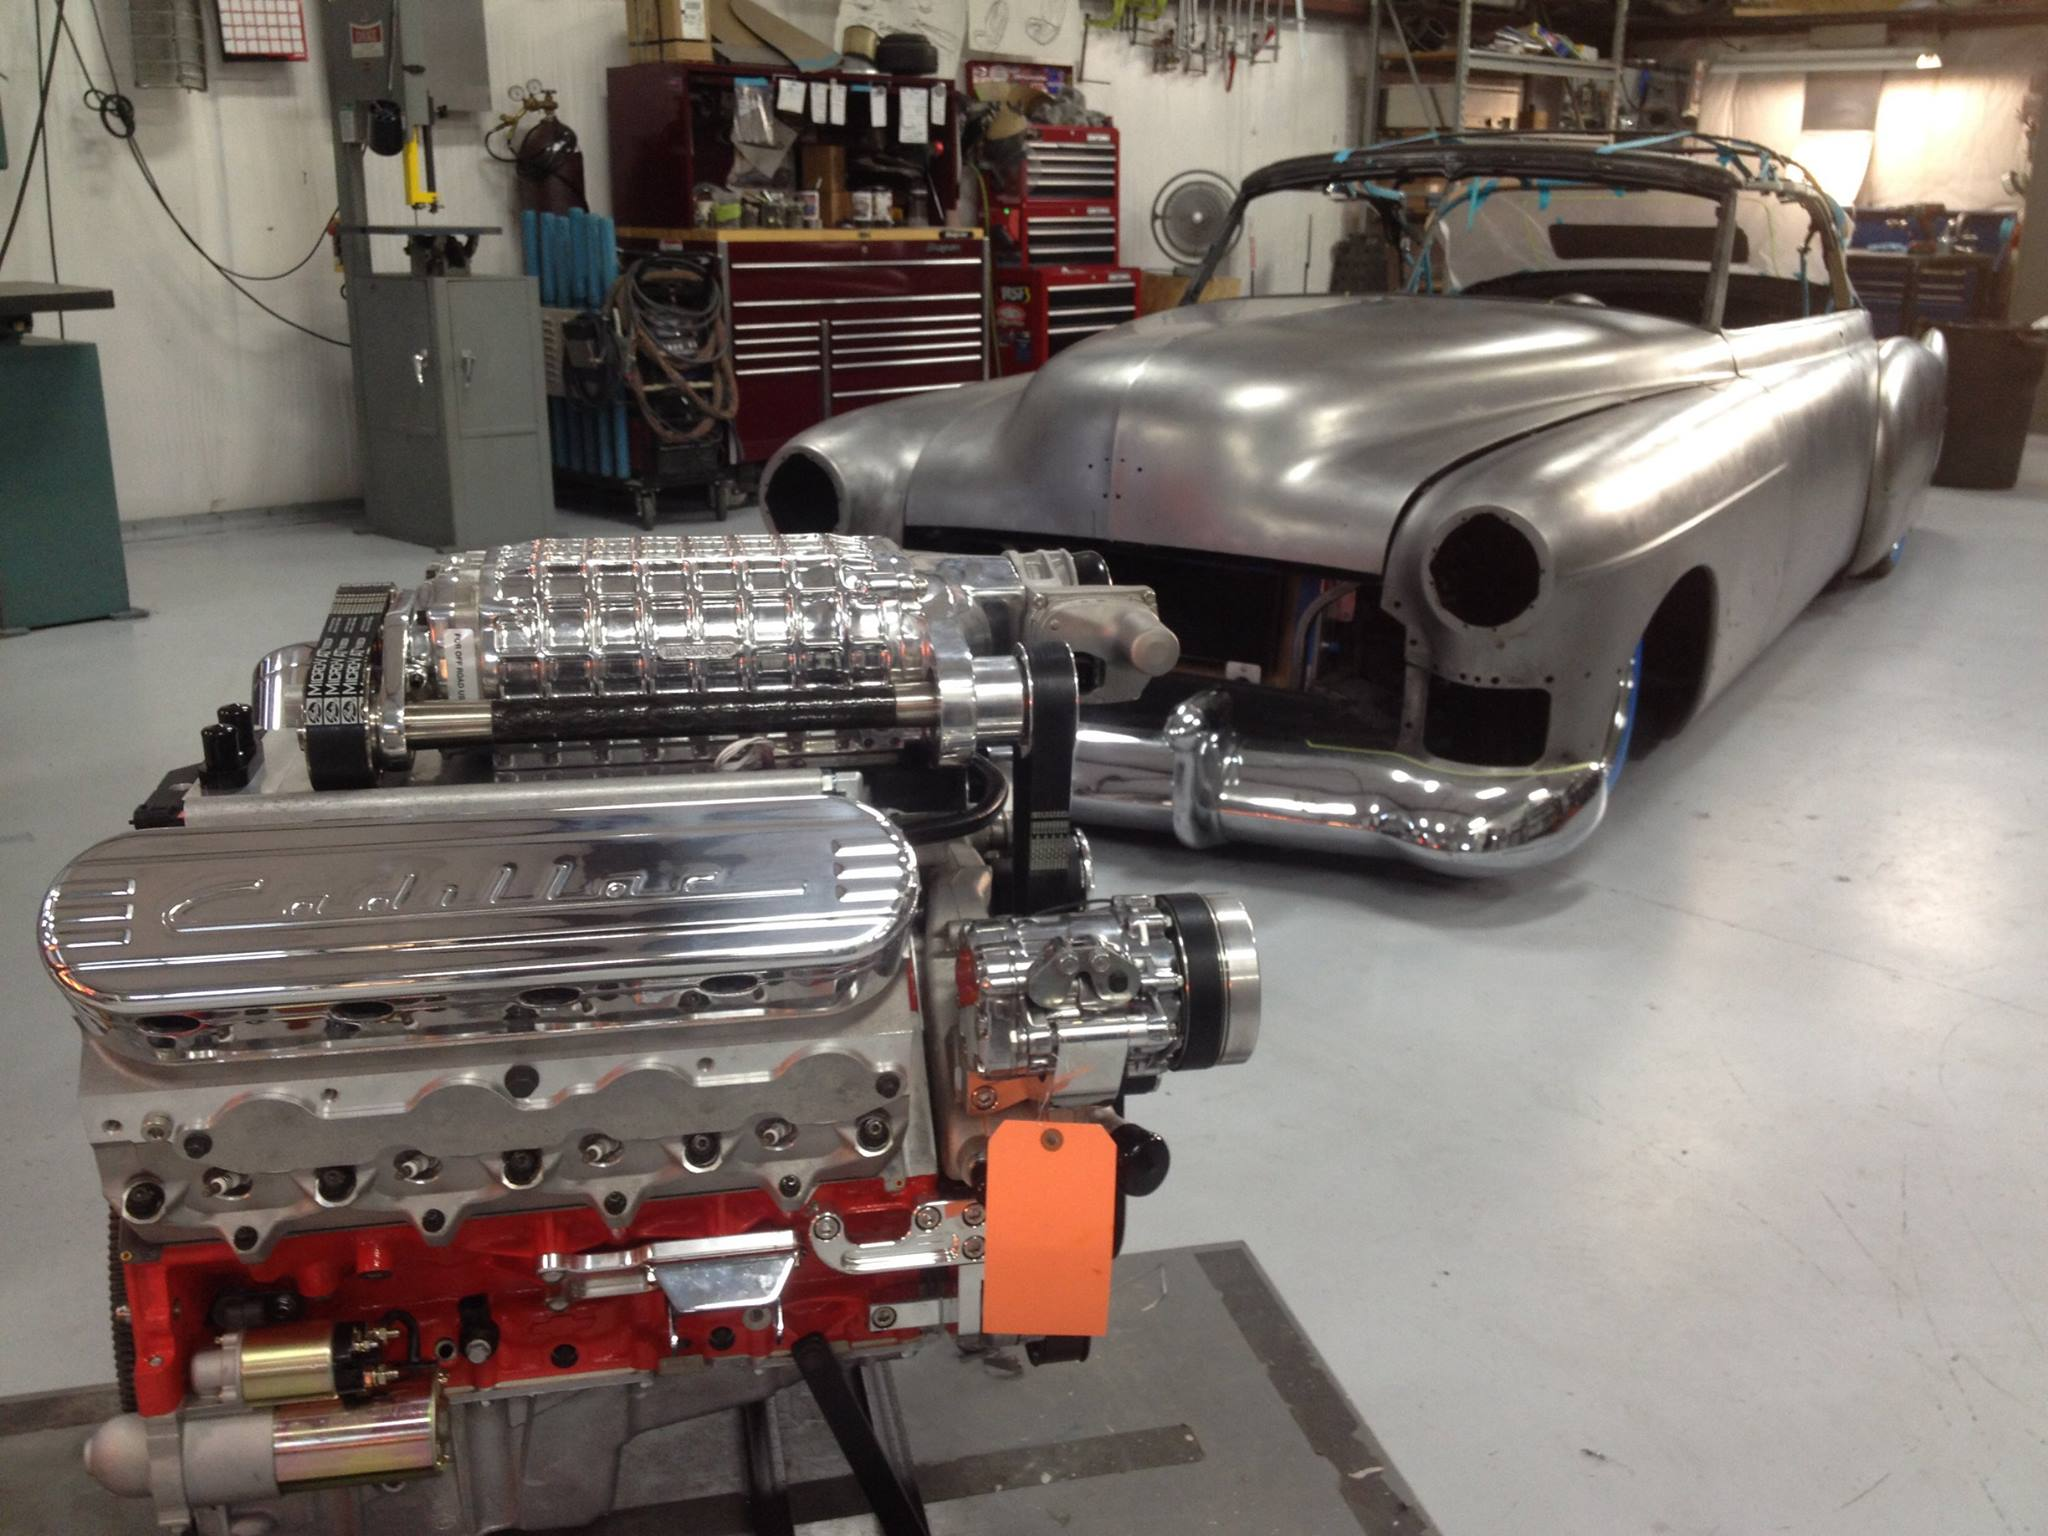 1949 Cadillac Series 62 With A Supercharged Lsx Engine Swap Depot V8 The Finishing Touch Is Magnuson 2300 Supercharger Which Contributes To Engines 975 Horsepower And 913 Lb Ft Of Torque